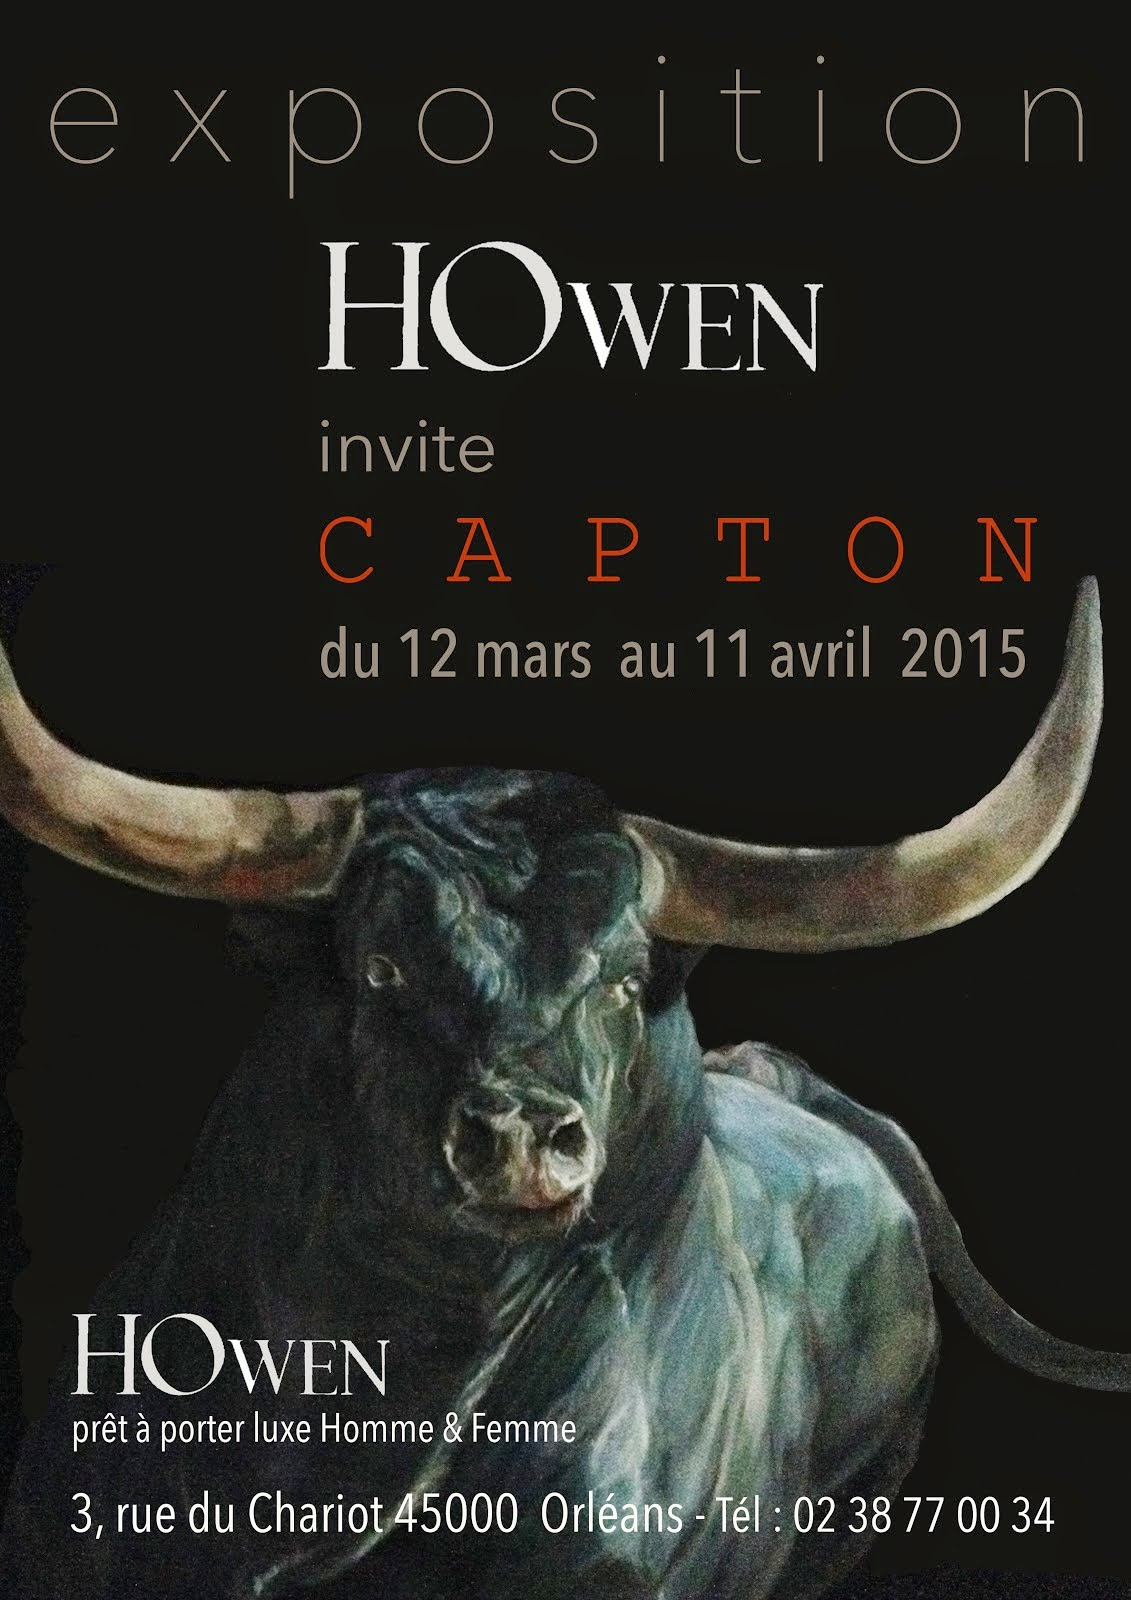 ORLEANS : HOWEN INVITE CAPTON